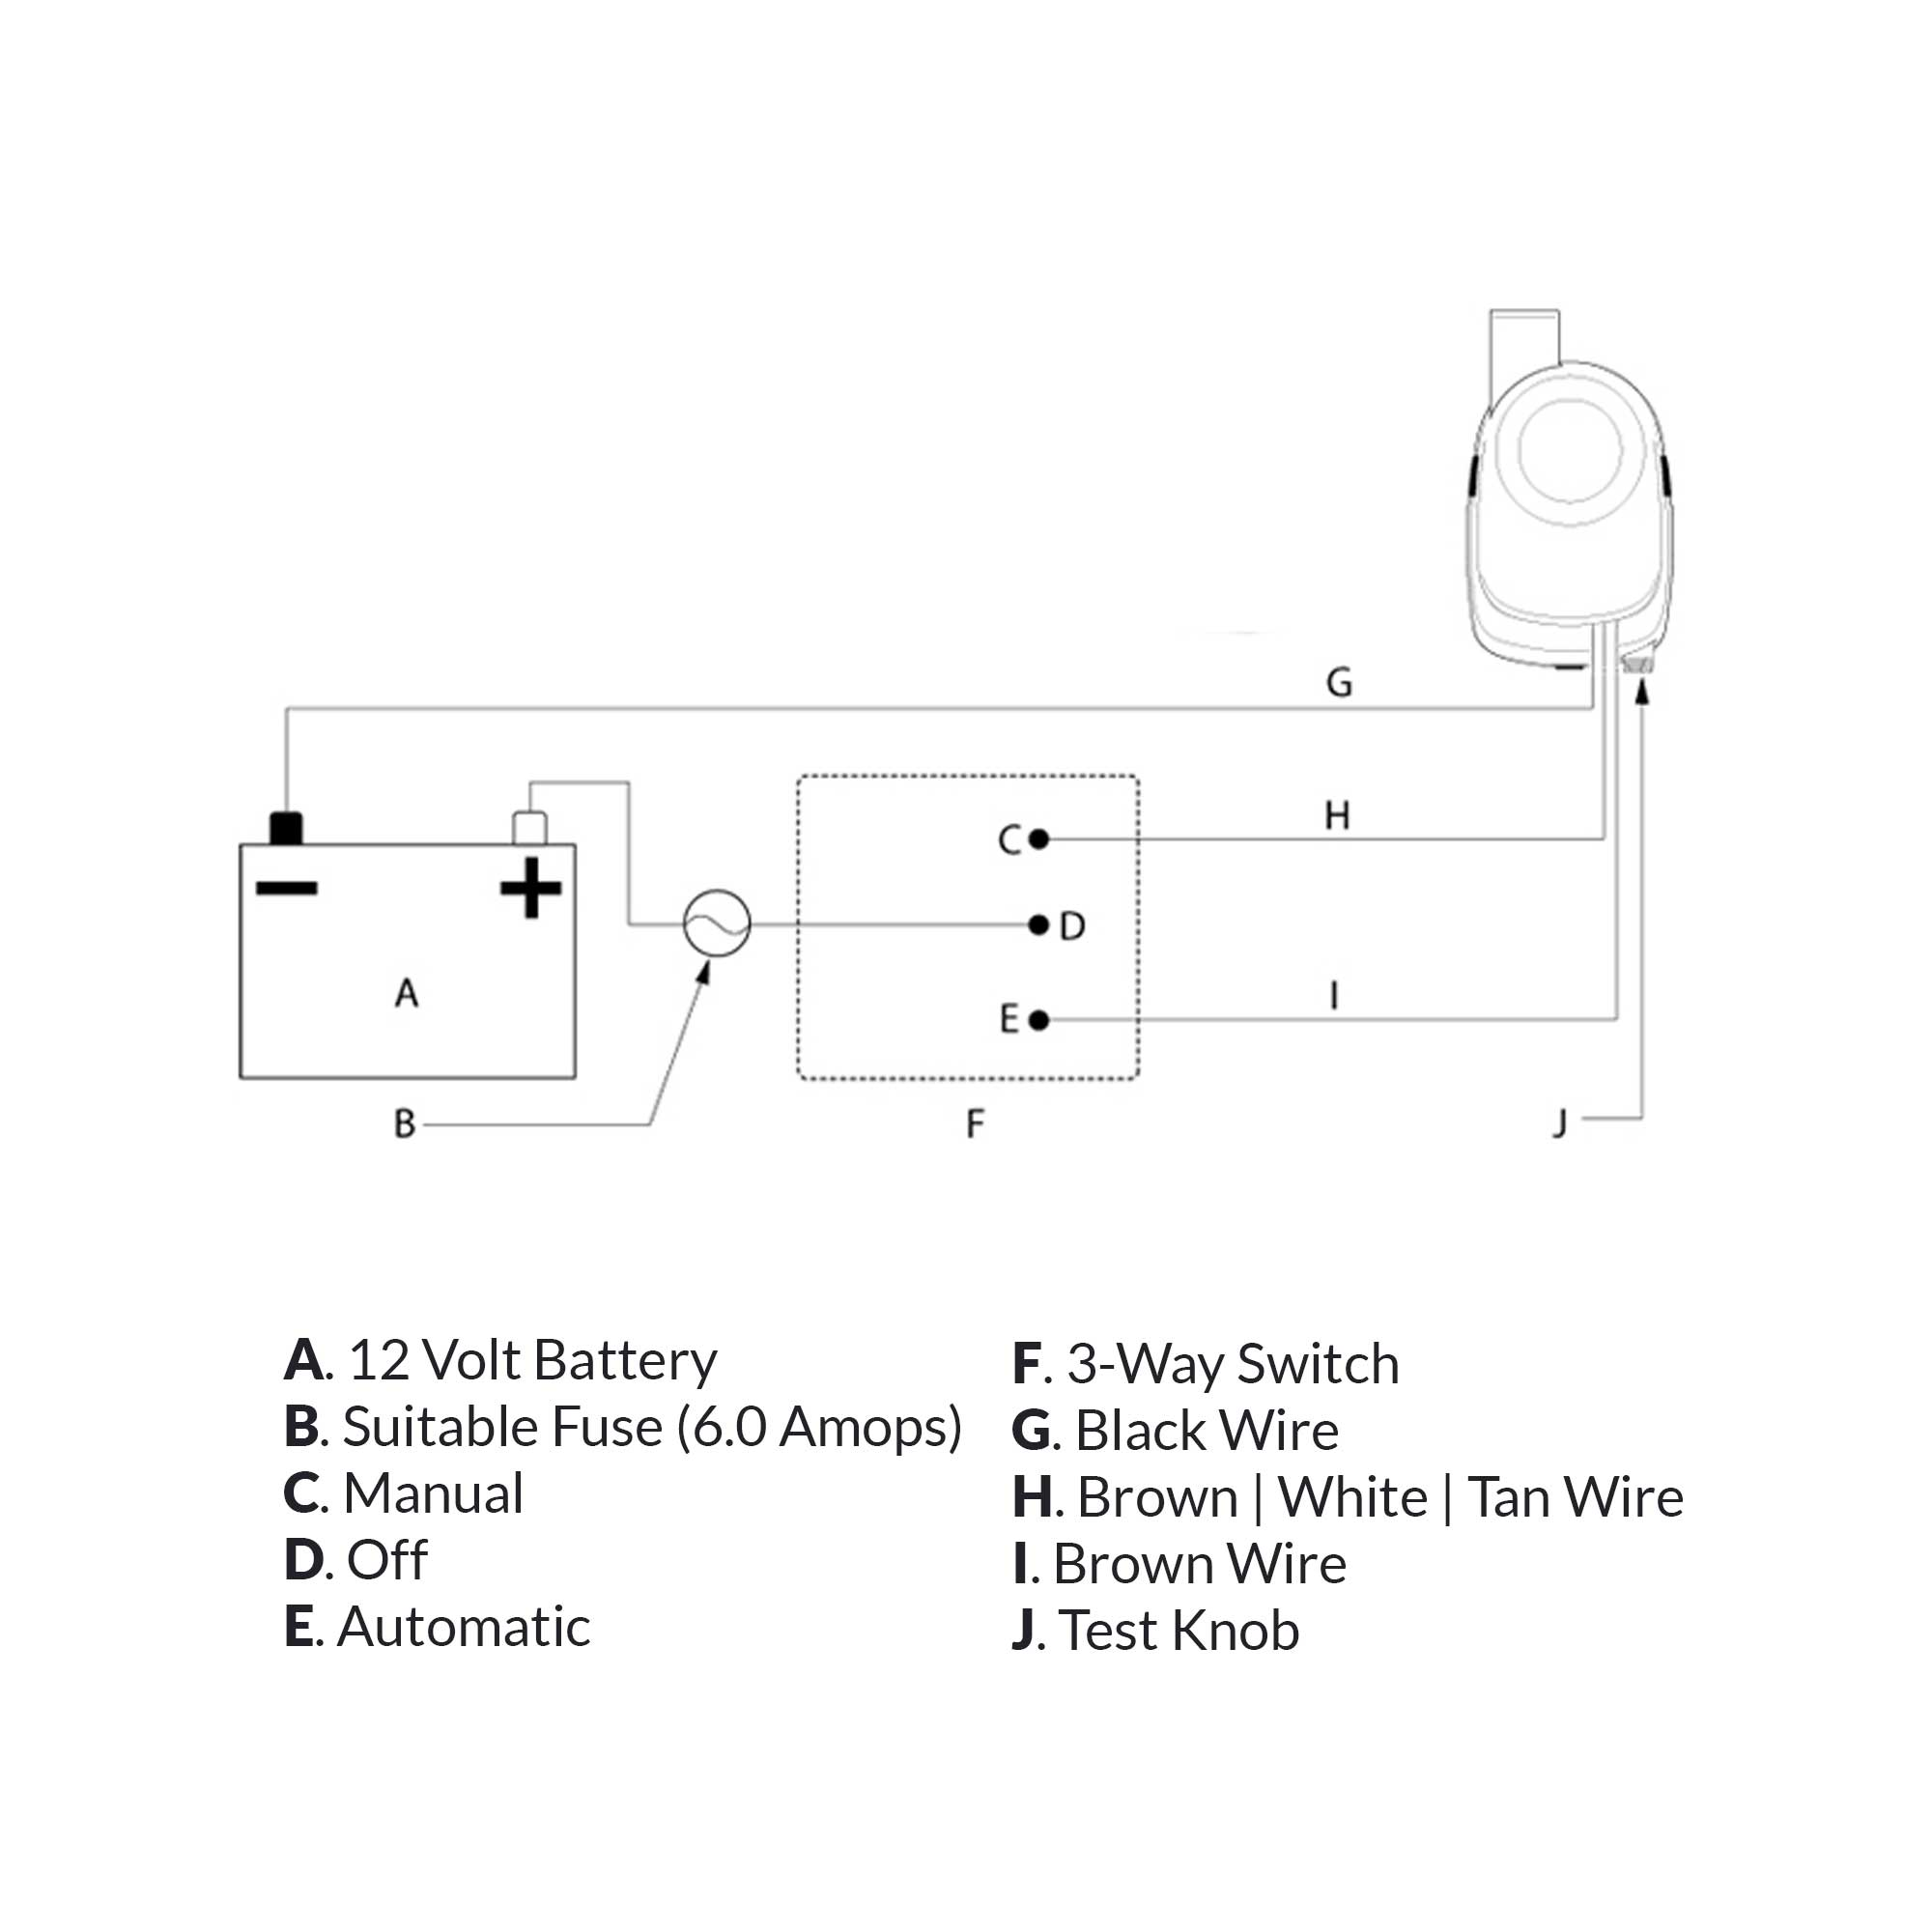 Attwood Sahara S1100 GPH Automatic Bilge Pump - (4511-1) FO ... on submersible pump wiring diagram, hayward pool pump wiring diagram, washdown pump wiring diagram, bilge pump plumbing diagram, bilge water, trim pump wiring diagram, heat pump wiring diagram, hydraulic pump wiring diagram, system diagram, sewage pump wiring diagram, condensate pump wiring diagram, fuel pump wiring diagram, bilge pump hose, sump pump wiring diagram, fire pump wiring diagram, bilge pump mounting diagram, 220 well pump wiring diagram, vacuum pump wiring diagram, level switch diagram, water pump wiring diagram,